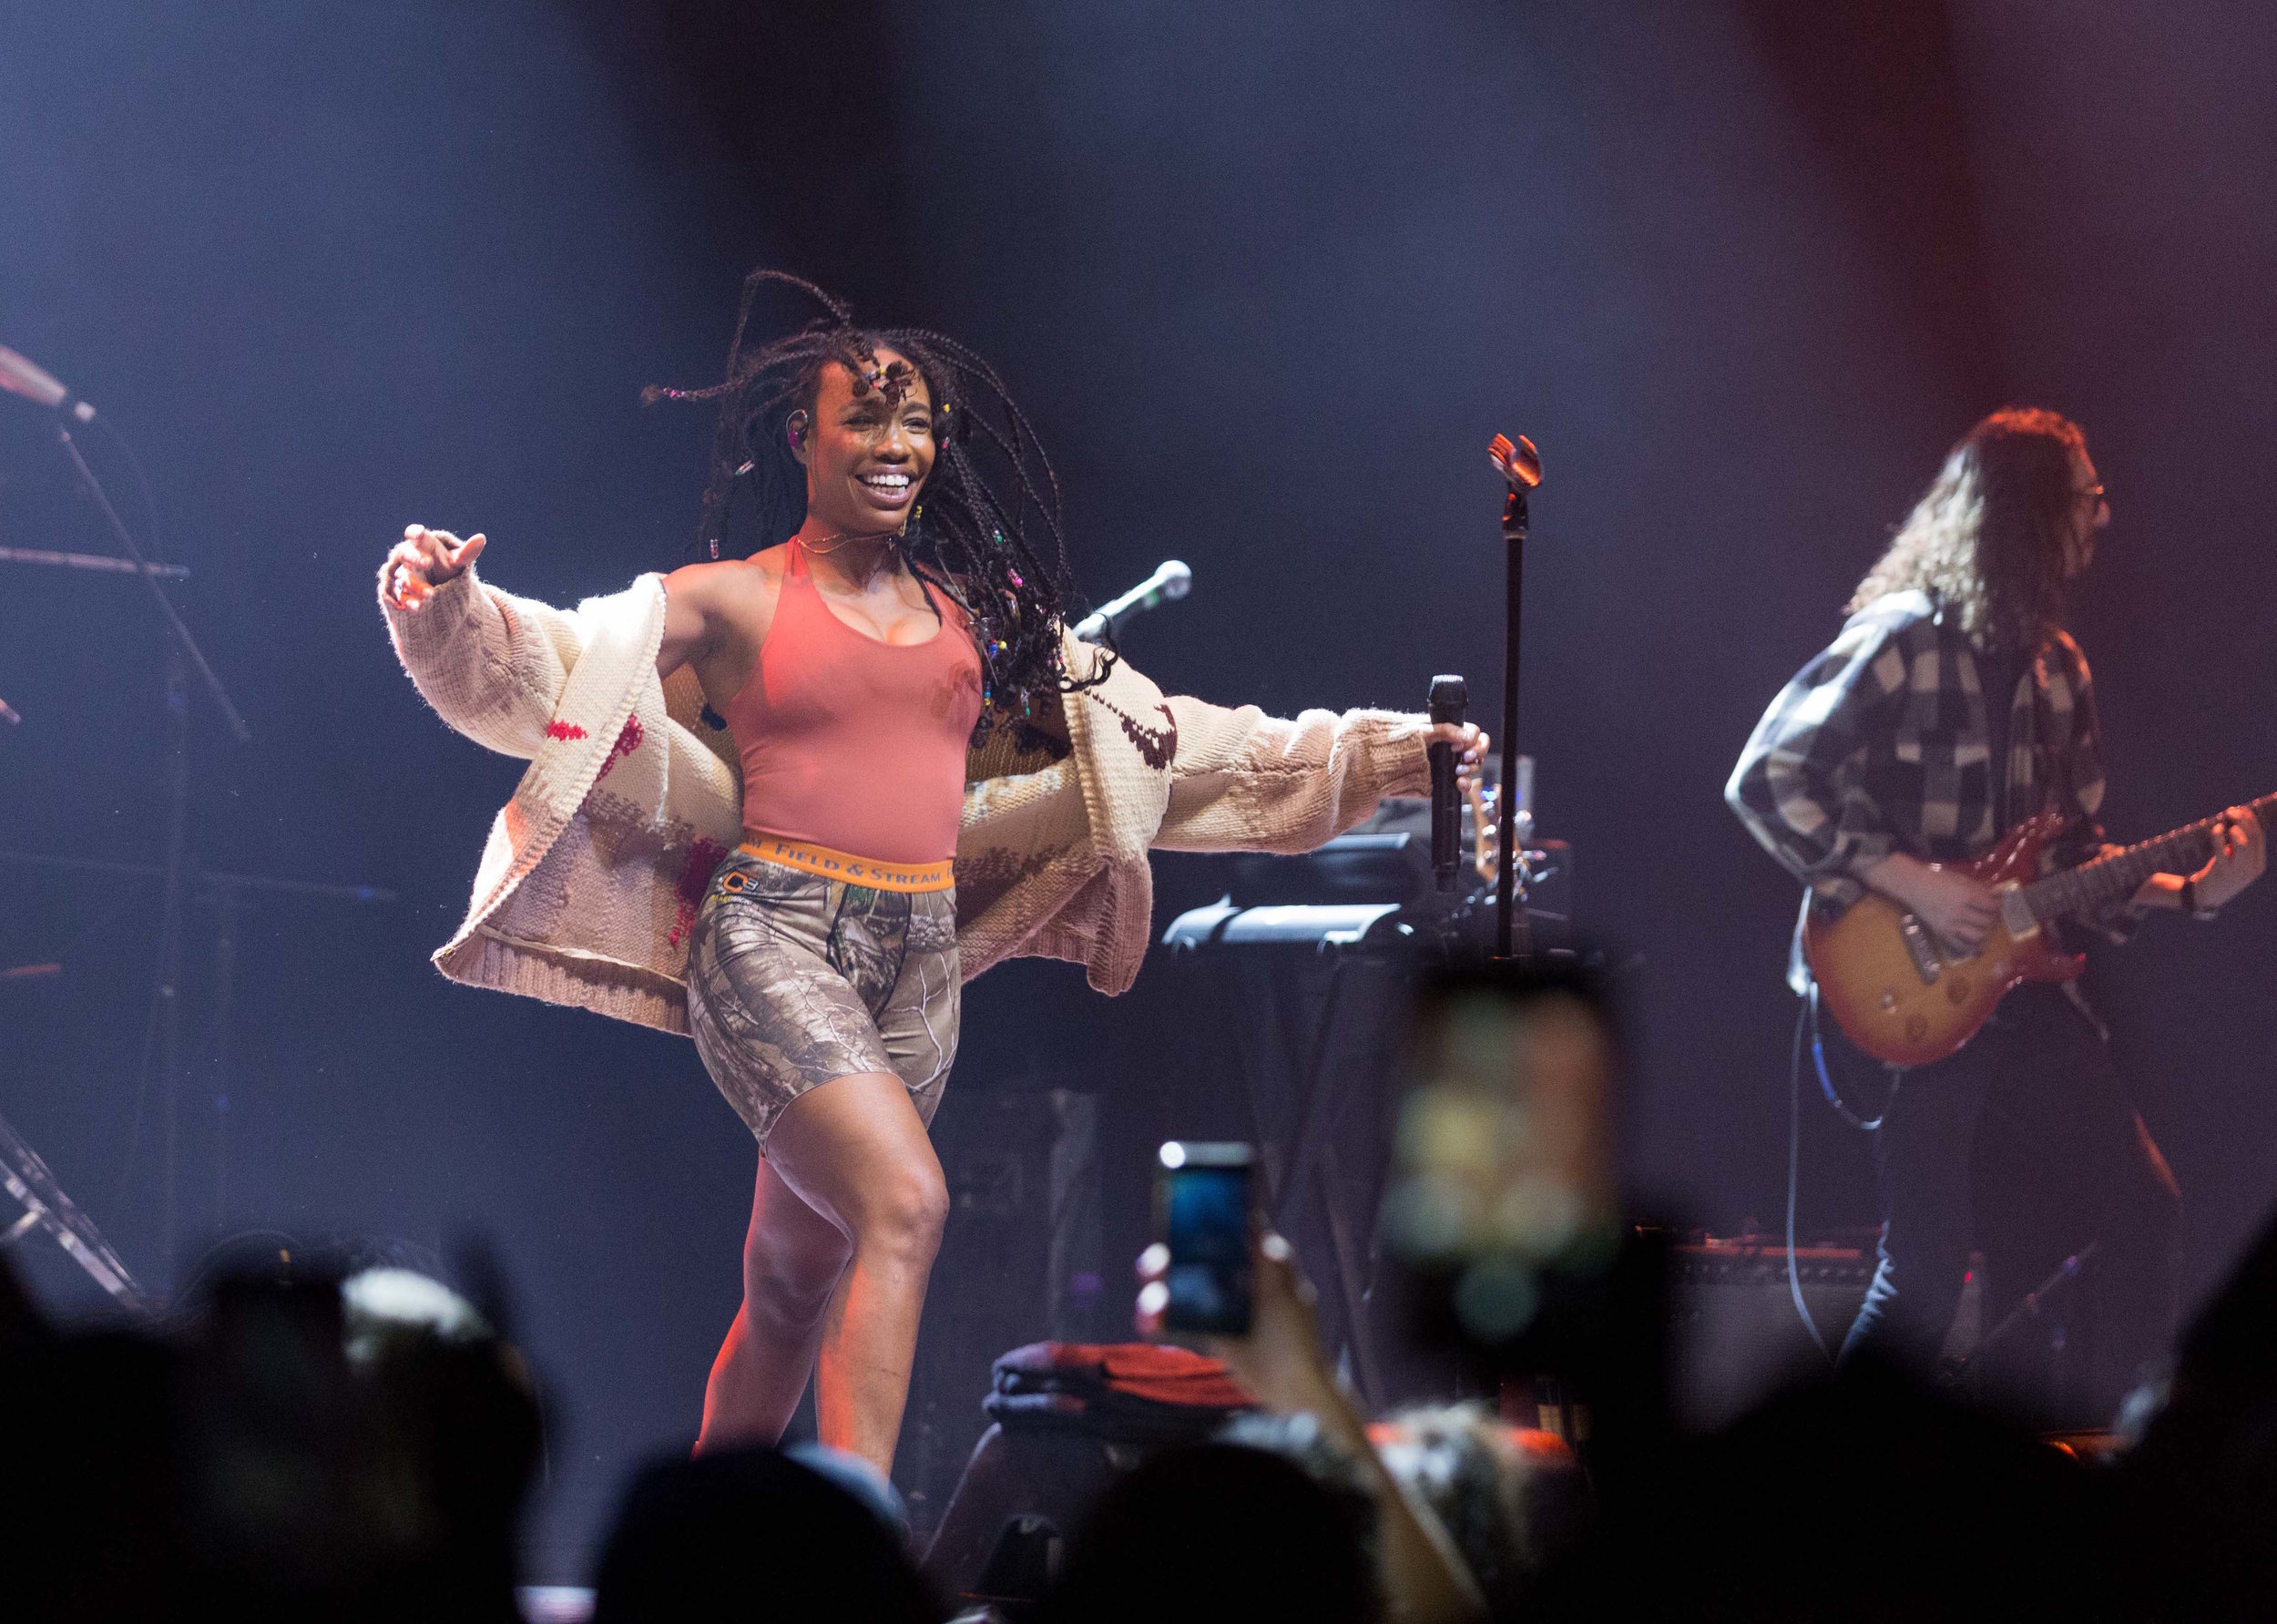 """American R&B singer Solána Imani Rowe """"SZA"""" dances on stage during her performance of """"Broken Clocks"""" off of her debut album """"Ctrl"""" at the Novo in Los Angeles, Calif. on Tuesday, November 14th 2017. The show was not originally on SZA's """"Ctrl"""" tour but was recently added due to high demand. Photo by Thane Fernandes."""